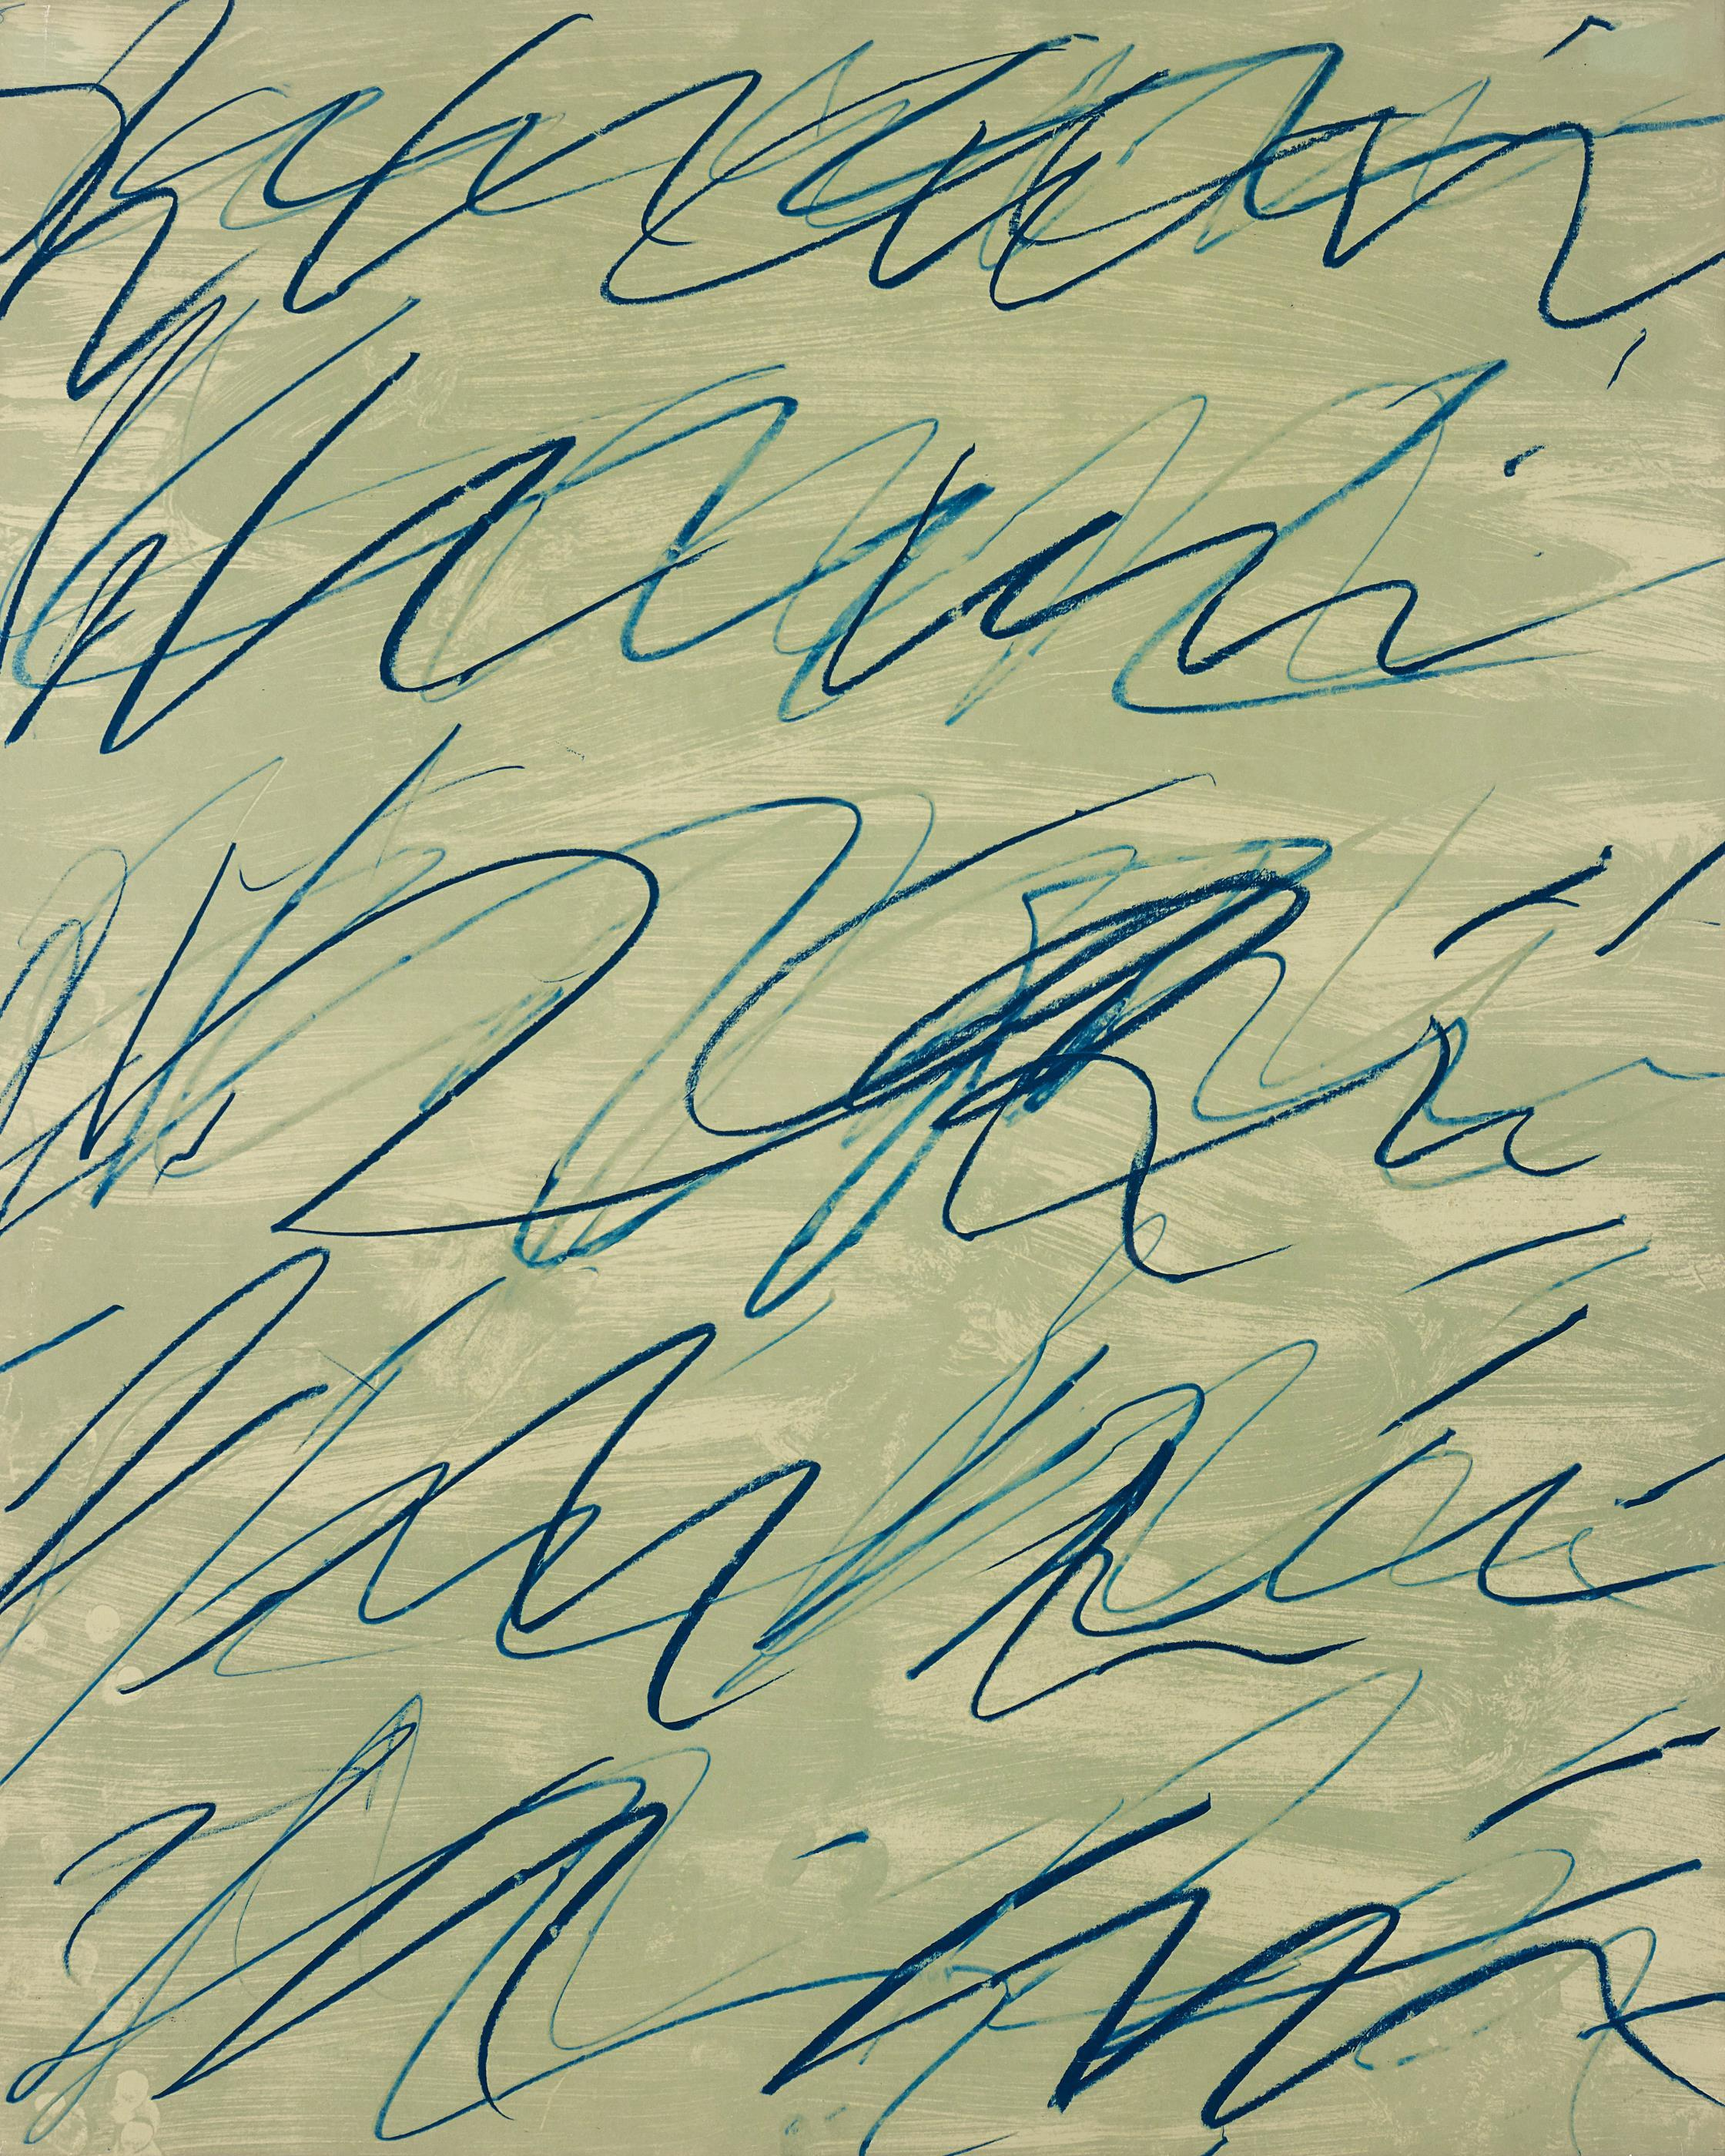 Roman Notes V, from Roman Notes by Cy Twombly